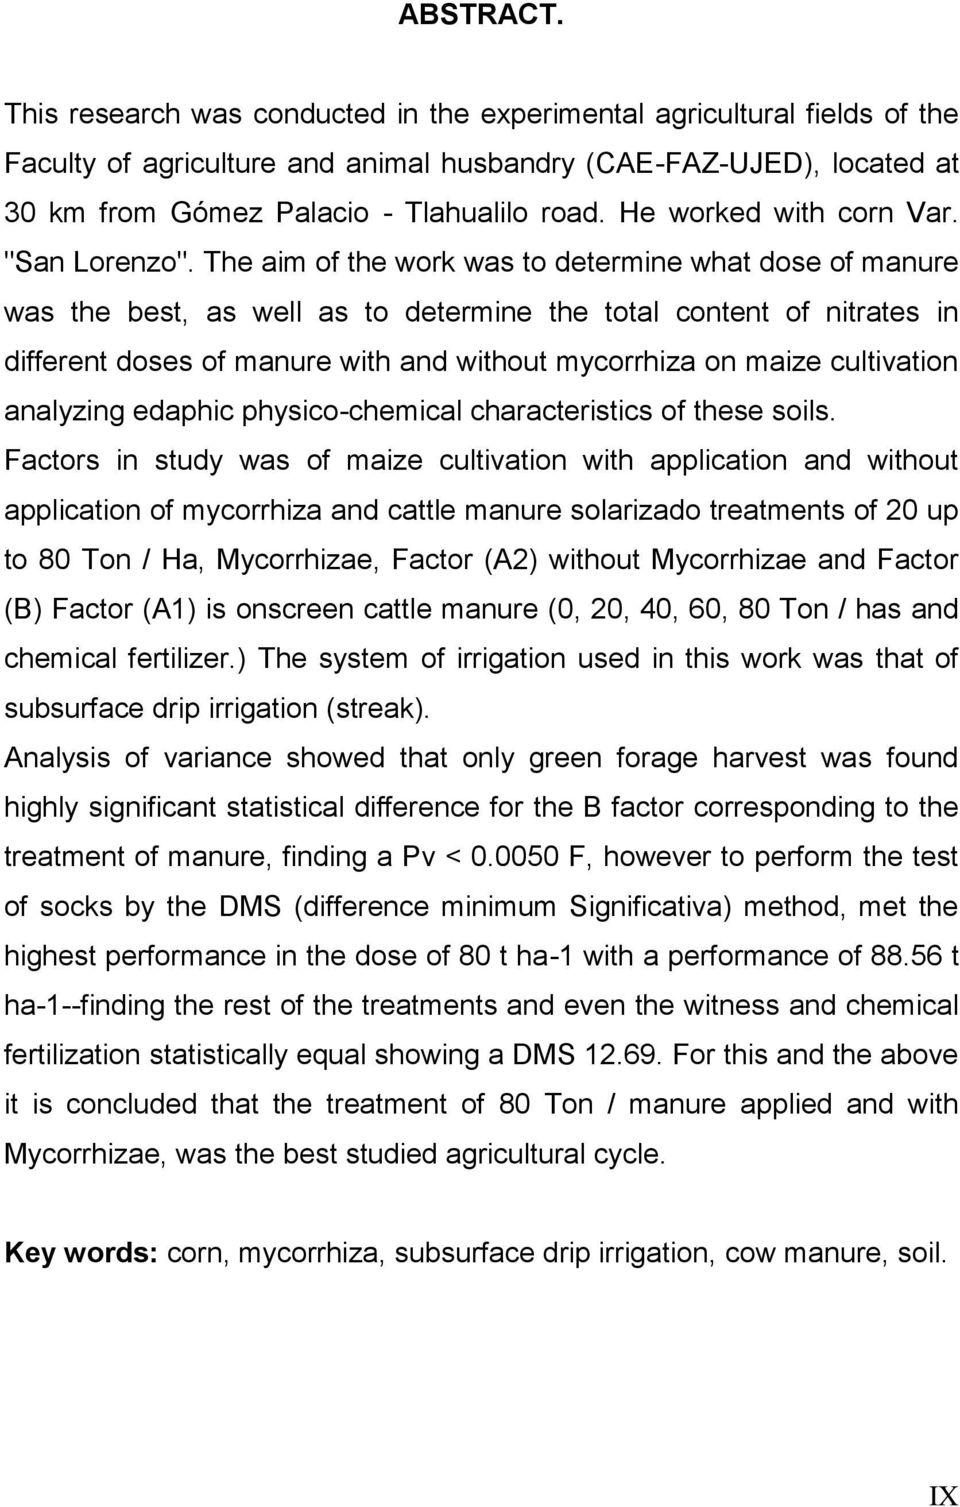 The aim of the work was to determine what dose of manure was the best, as well as to determine the total content of nitrates in different doses of manure with and without mycorrhiza on maize